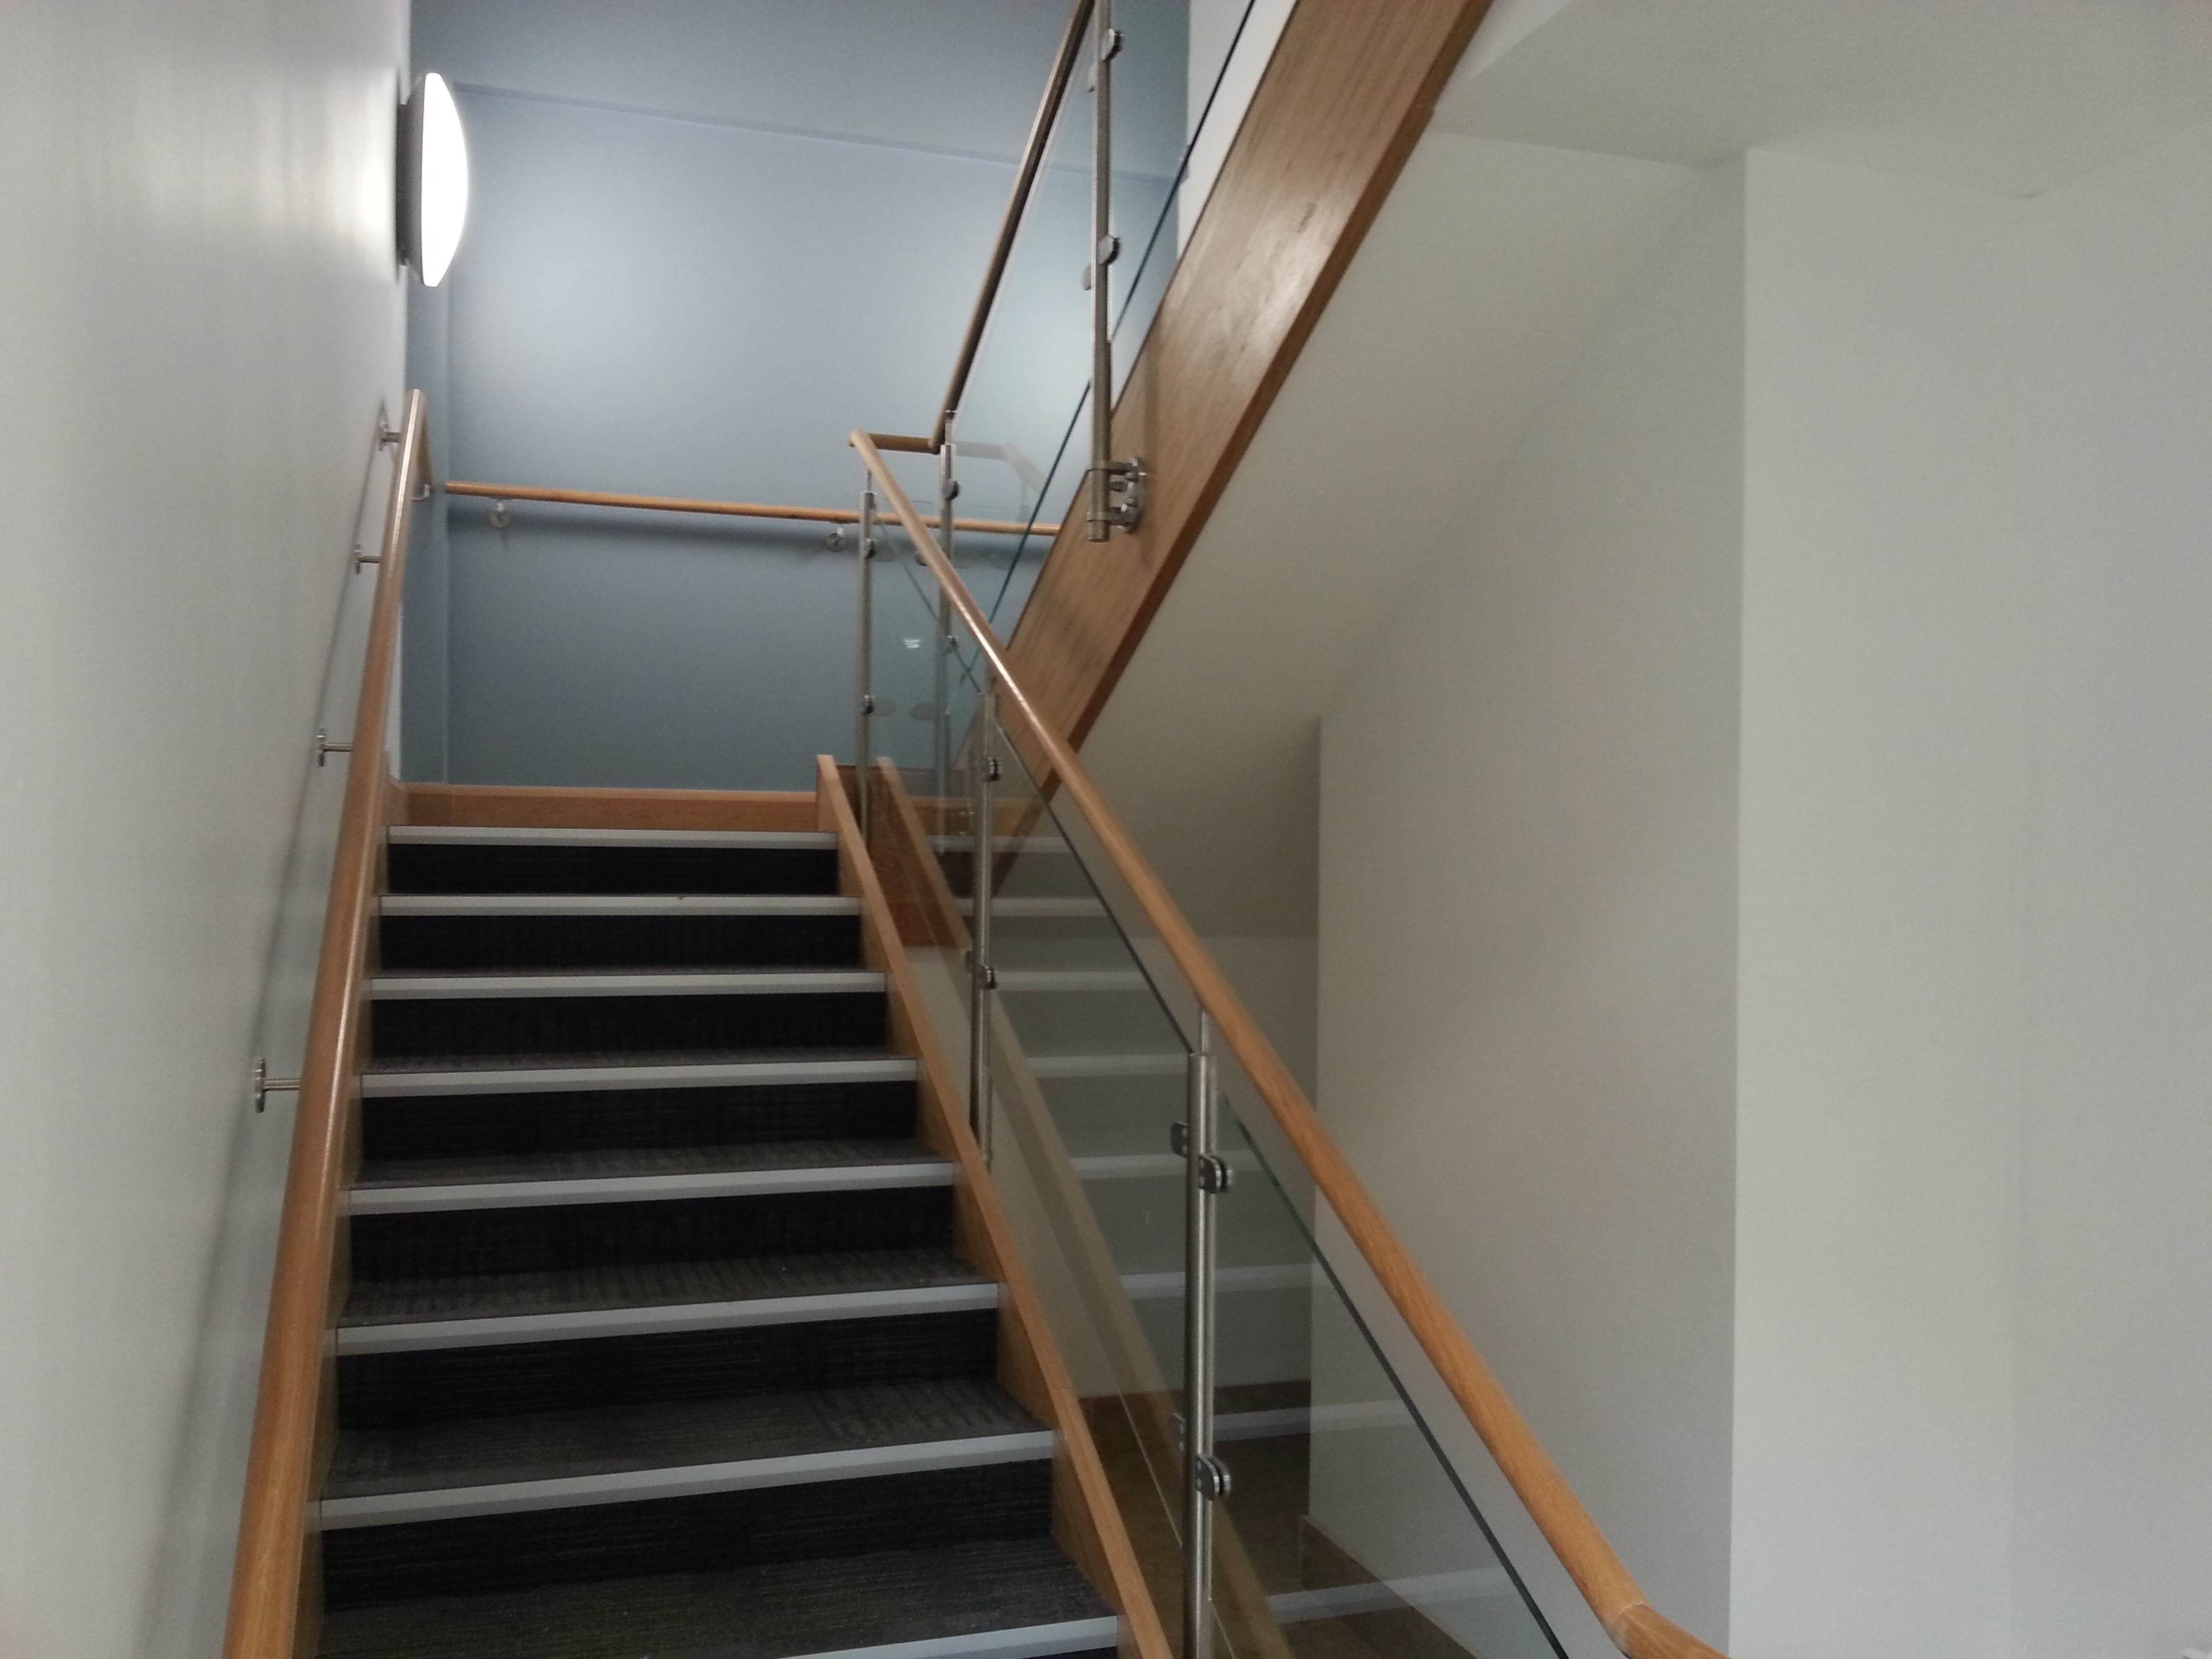 Stainless Steel Photos Services Morris Fabrications Ltd